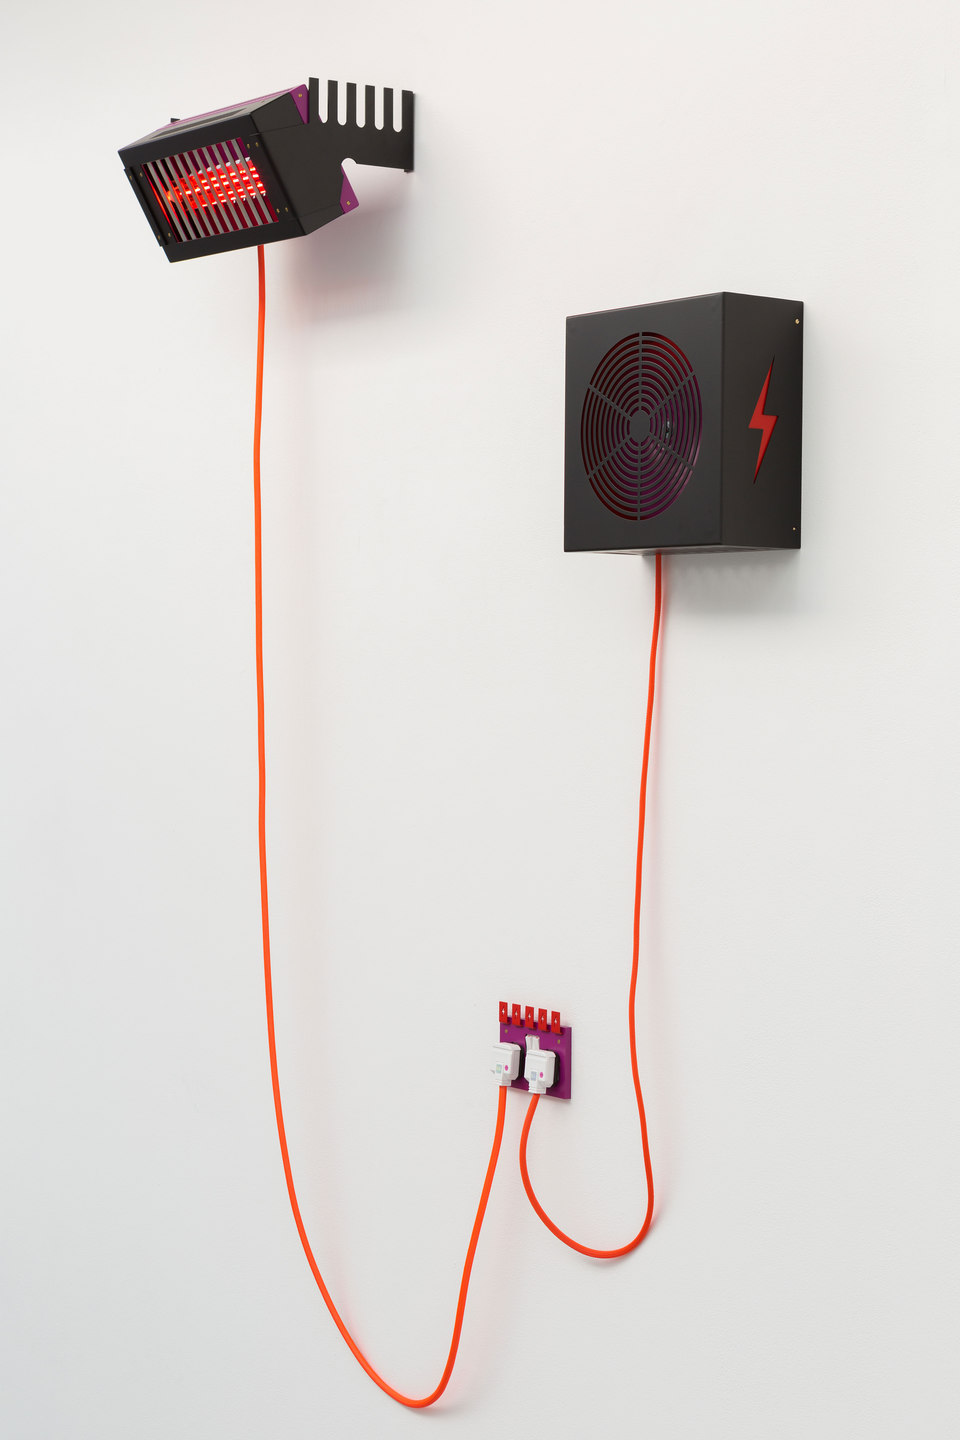 Natalie Dray, DRAY, 'Infrared Fuchsia', 2015, 'Cool Neutral', 2015, 'Face-Lift Contactum VI', 2015, Cell Project Space